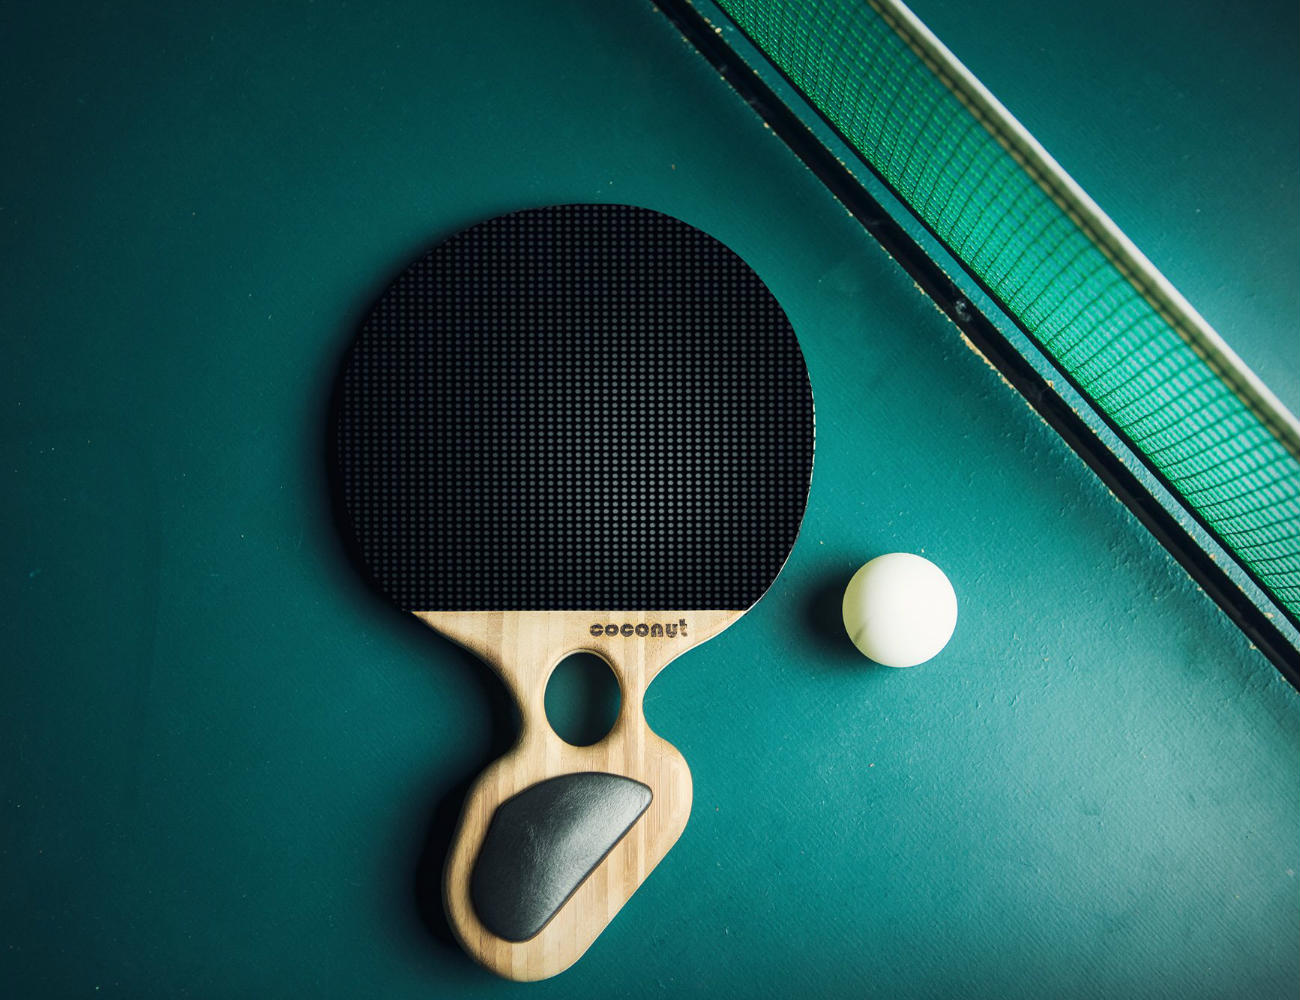 Coconut+Paddle+For+Table+Tennis